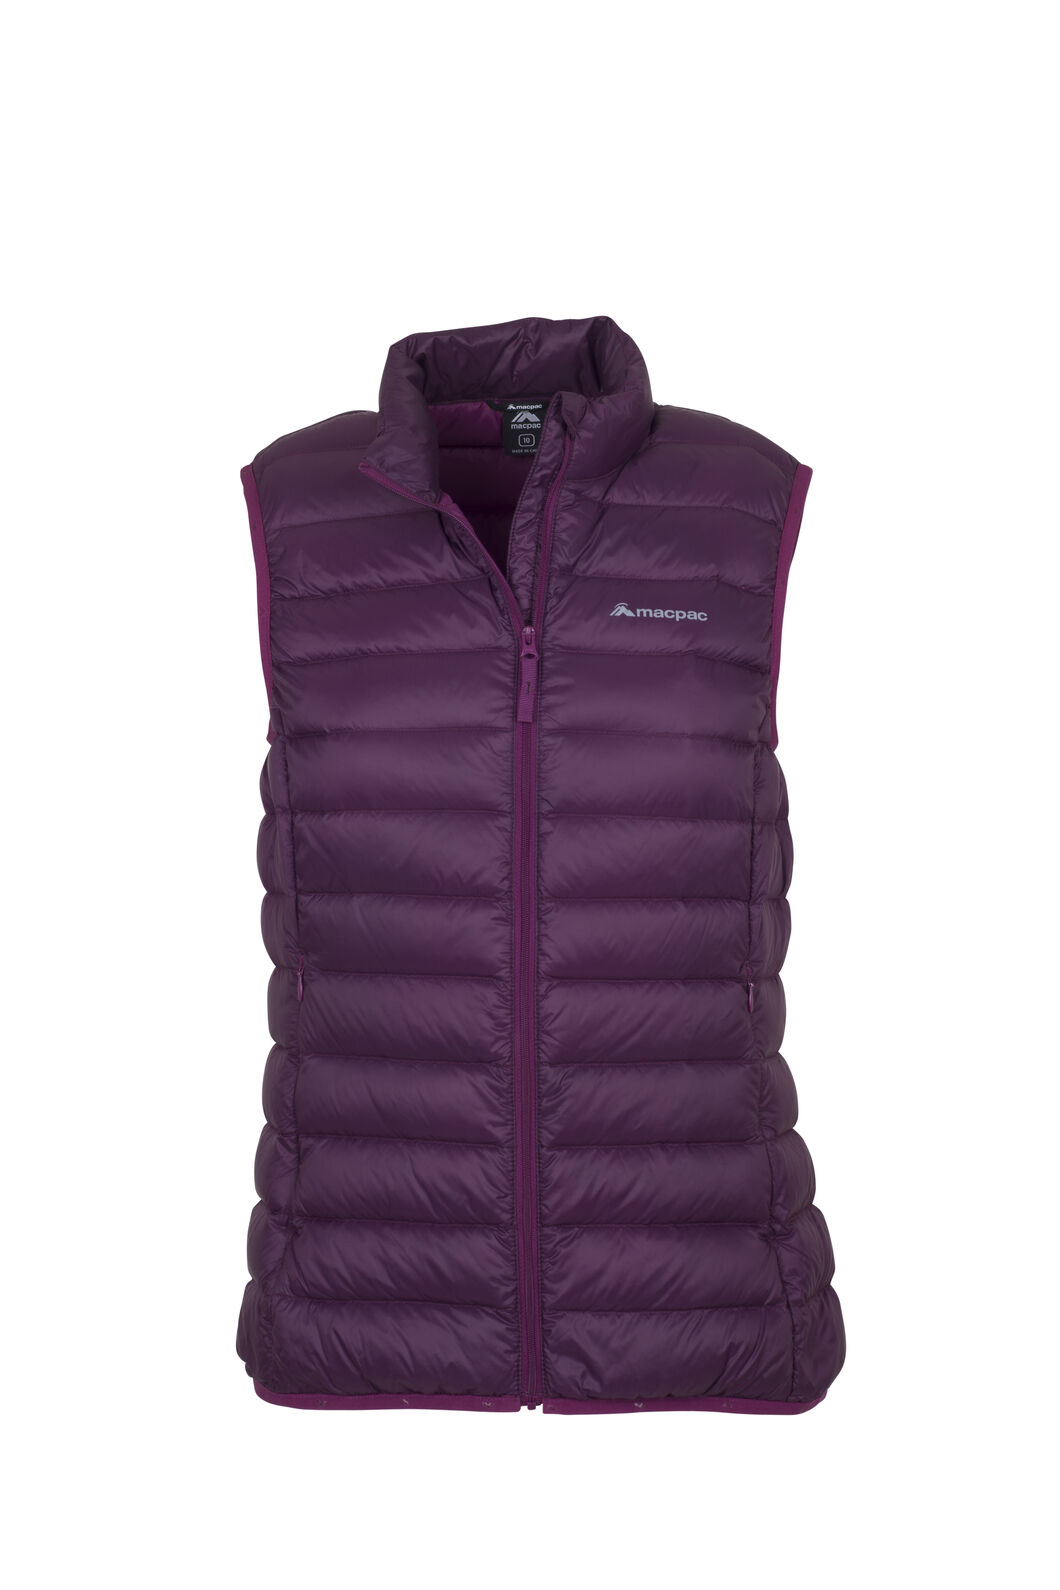 Macpac Uber Light Down Vest - Women's, Potent Purple, hi-res